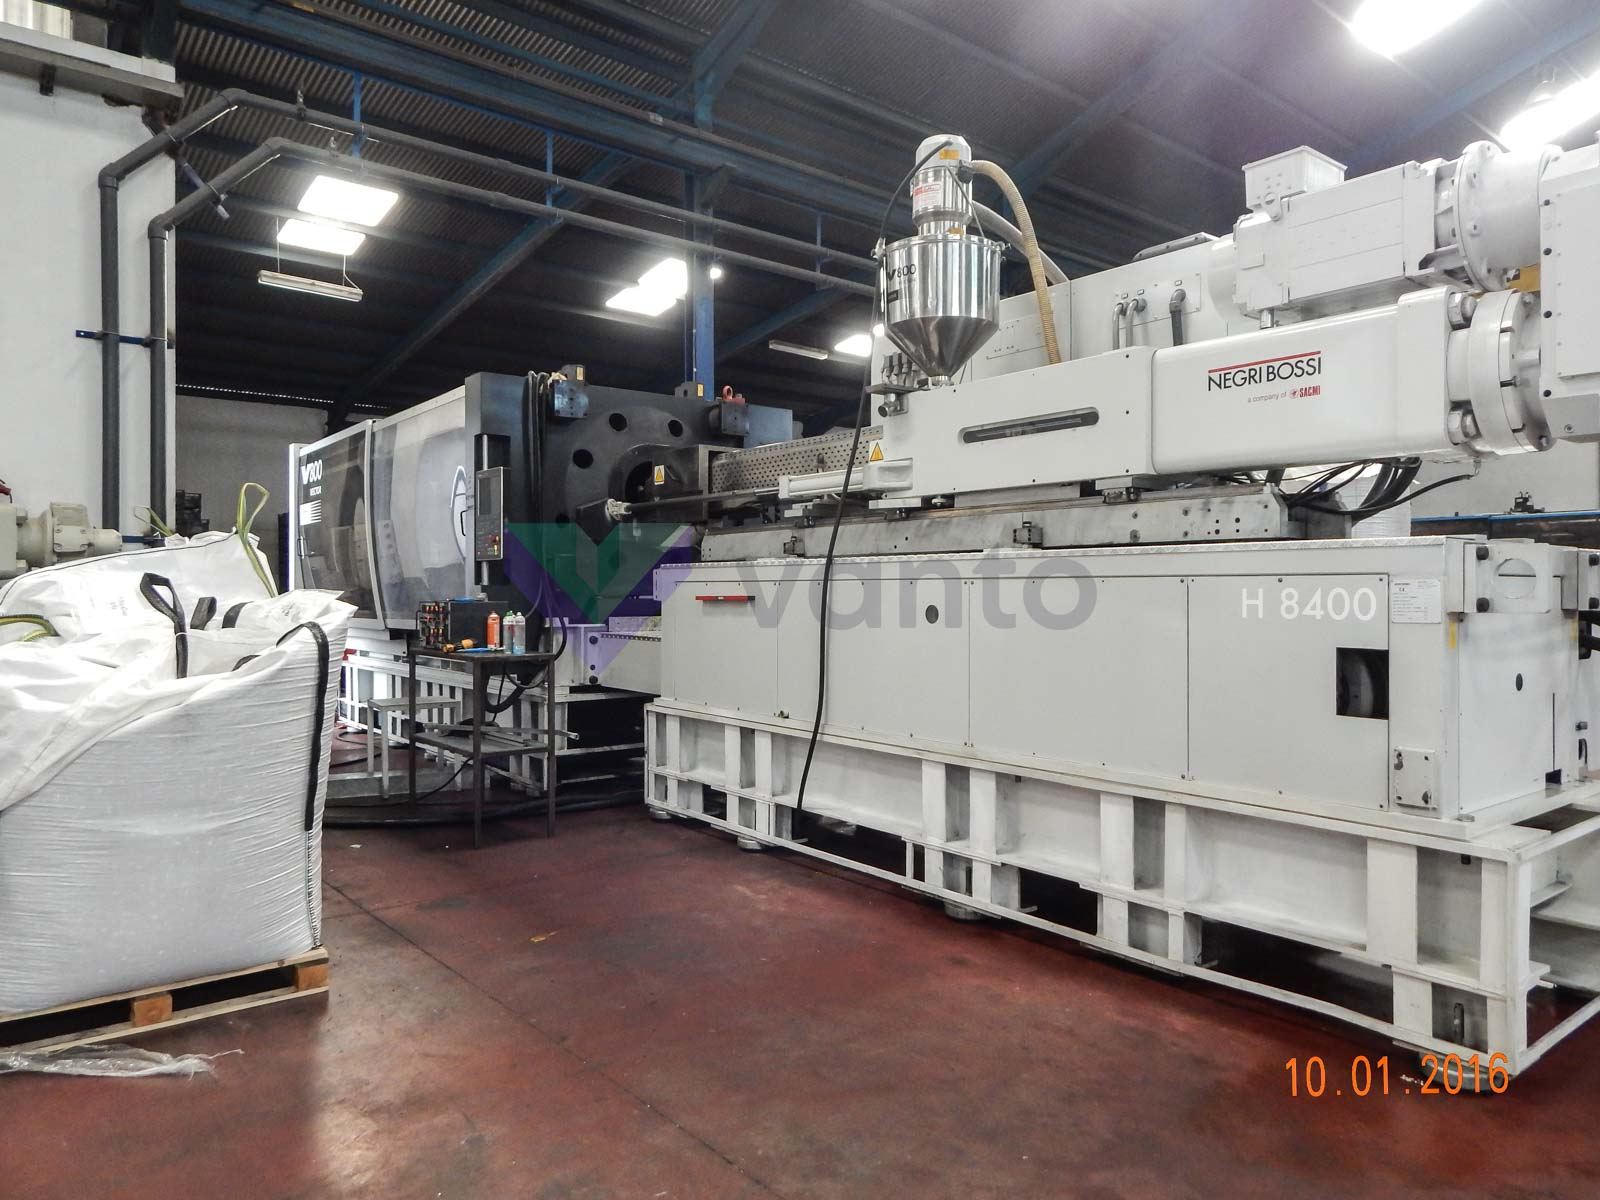 NEGRI BOSSI VECTOR V800 4100 800t injection molding machine (2010) id5306